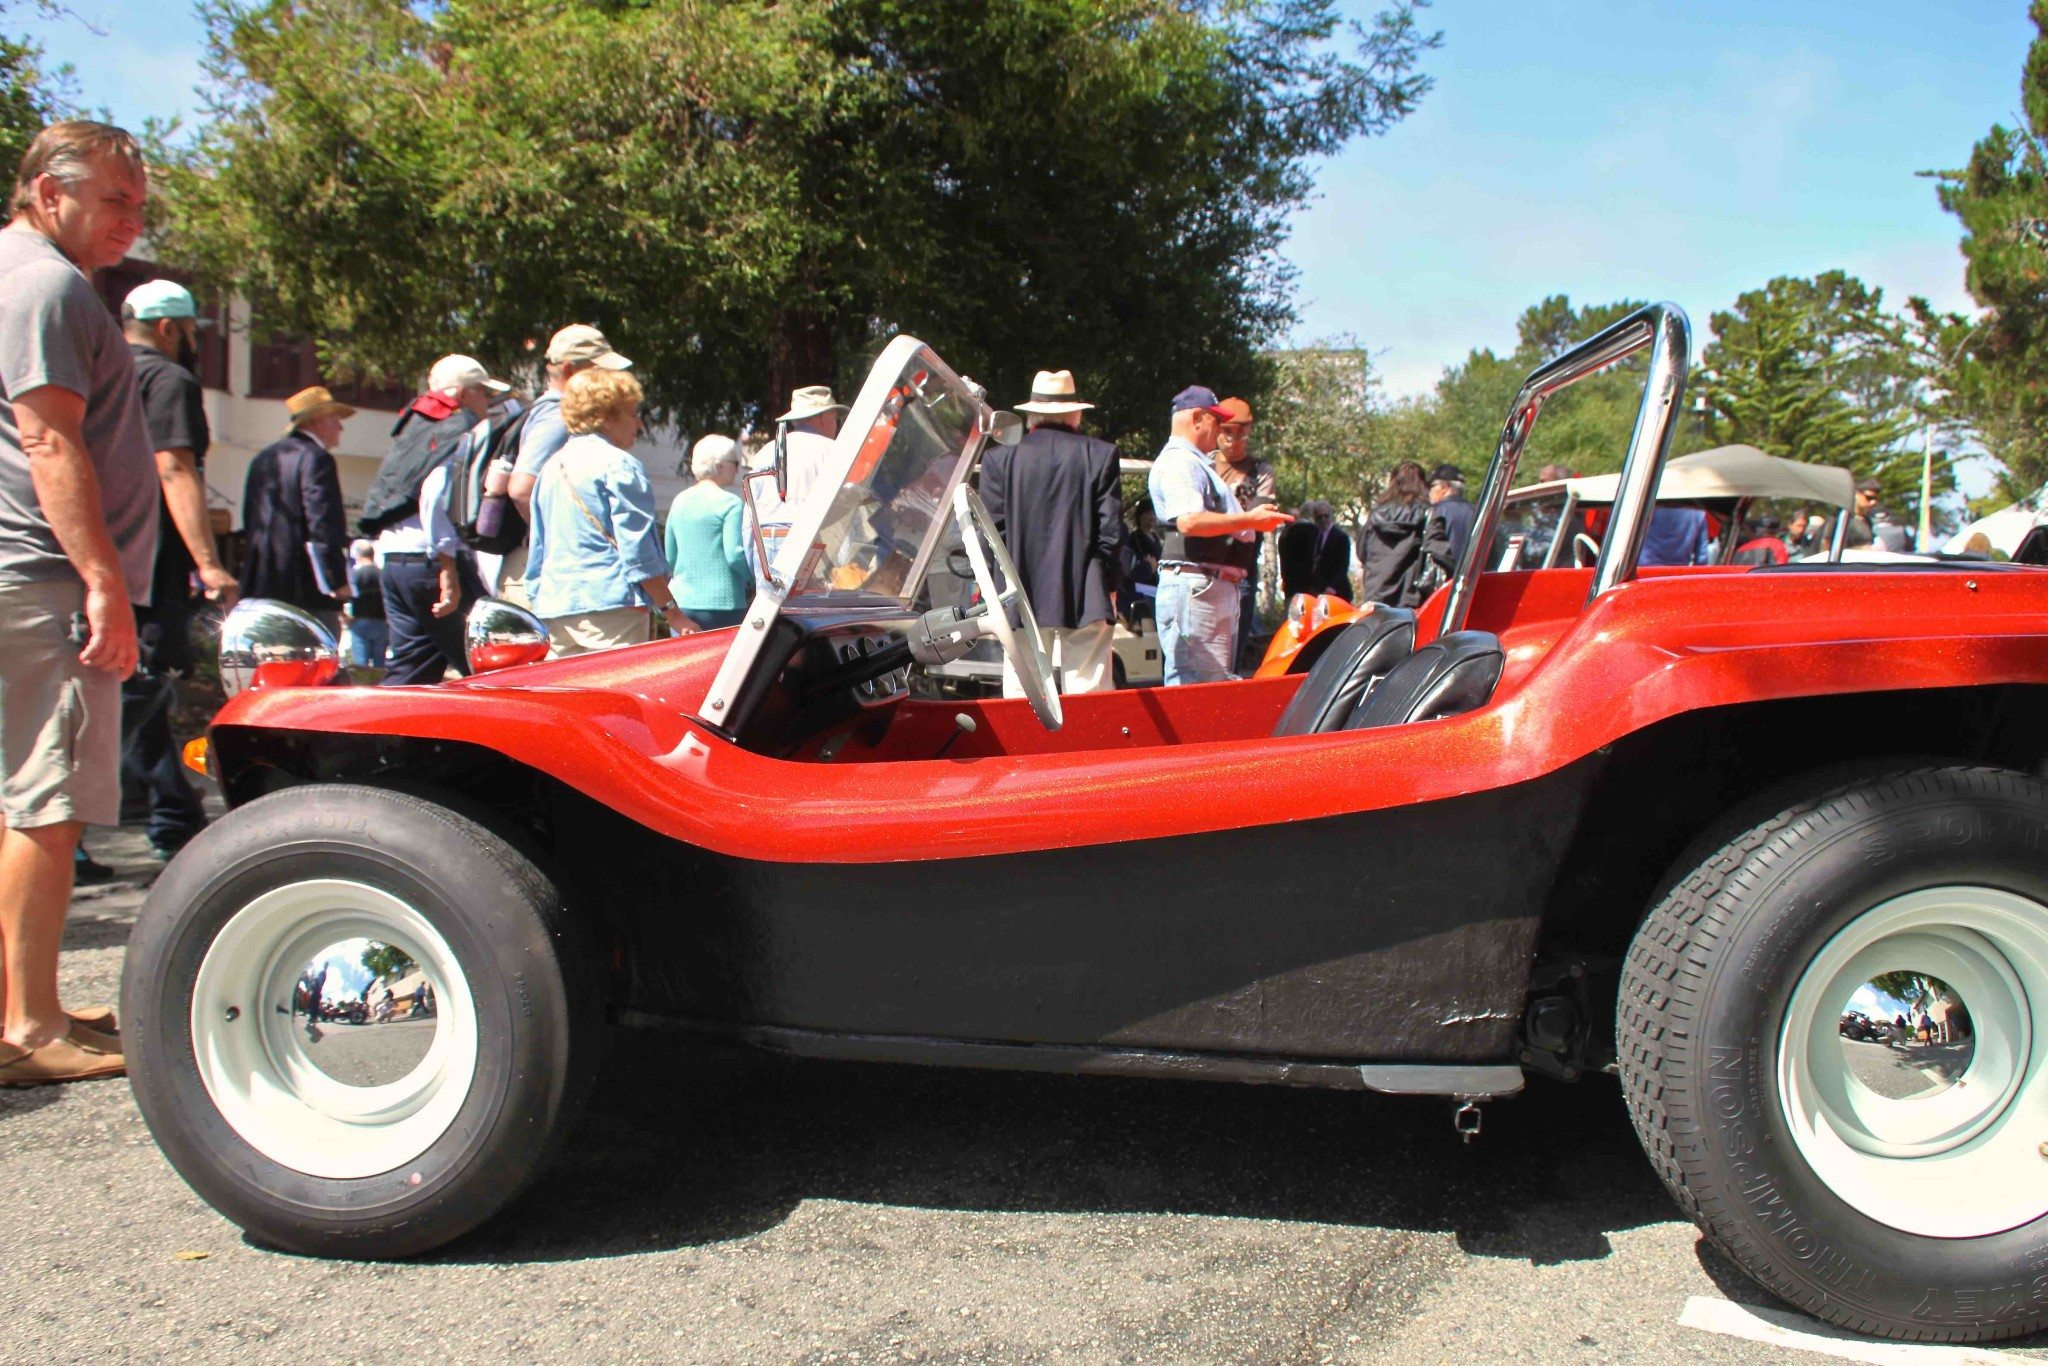 Bruce F Meyers Built His First Dune Buggy Starting In Late 1963 Using A Shortened Volkswagen Beetle Floor Pan Fibergl Shell Of Body